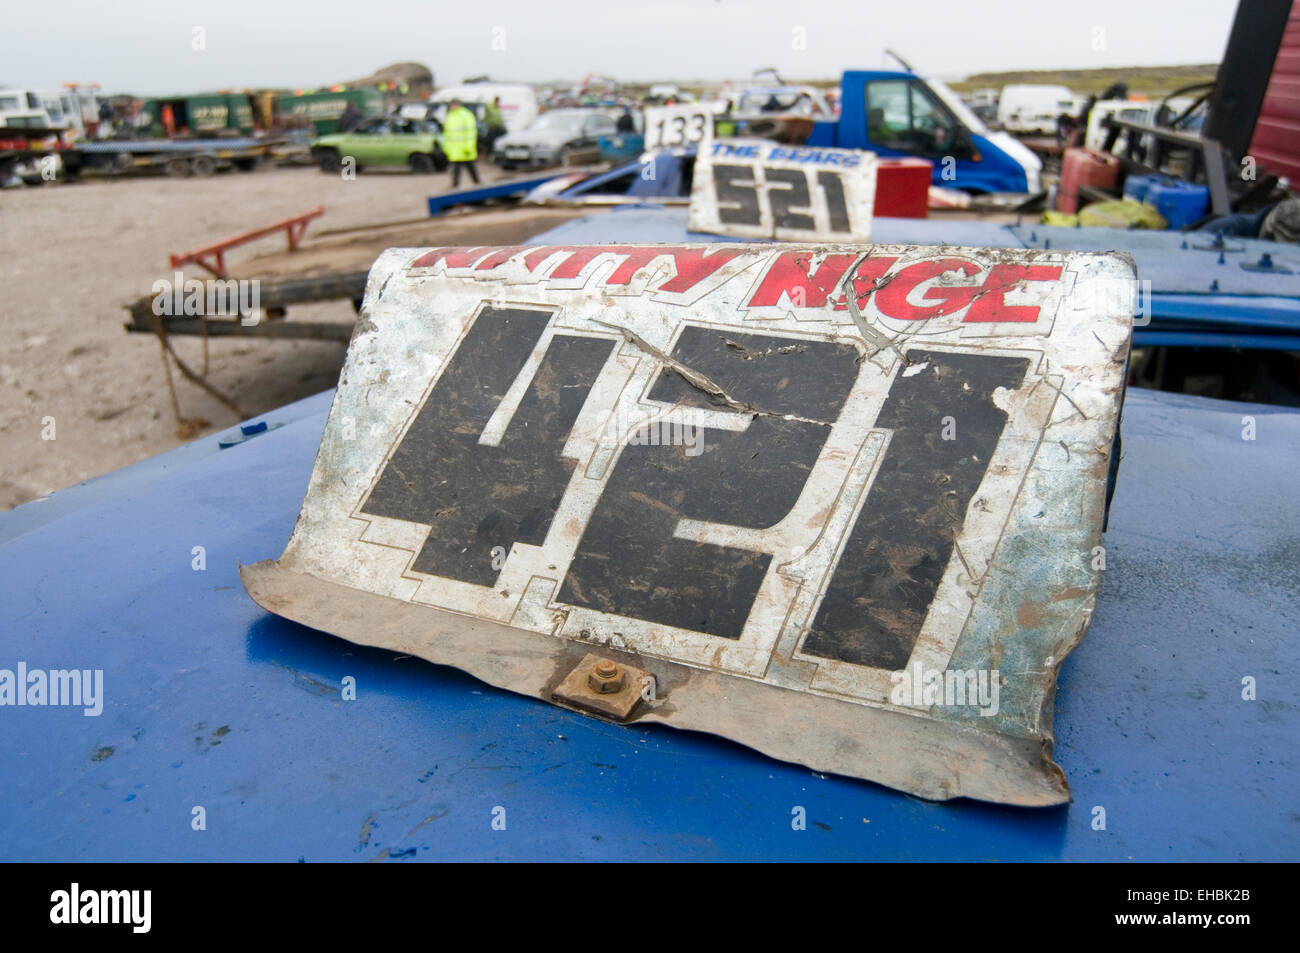 roof mounted fin plate on demo derby car with the drivers identifying race number on - Stock Image